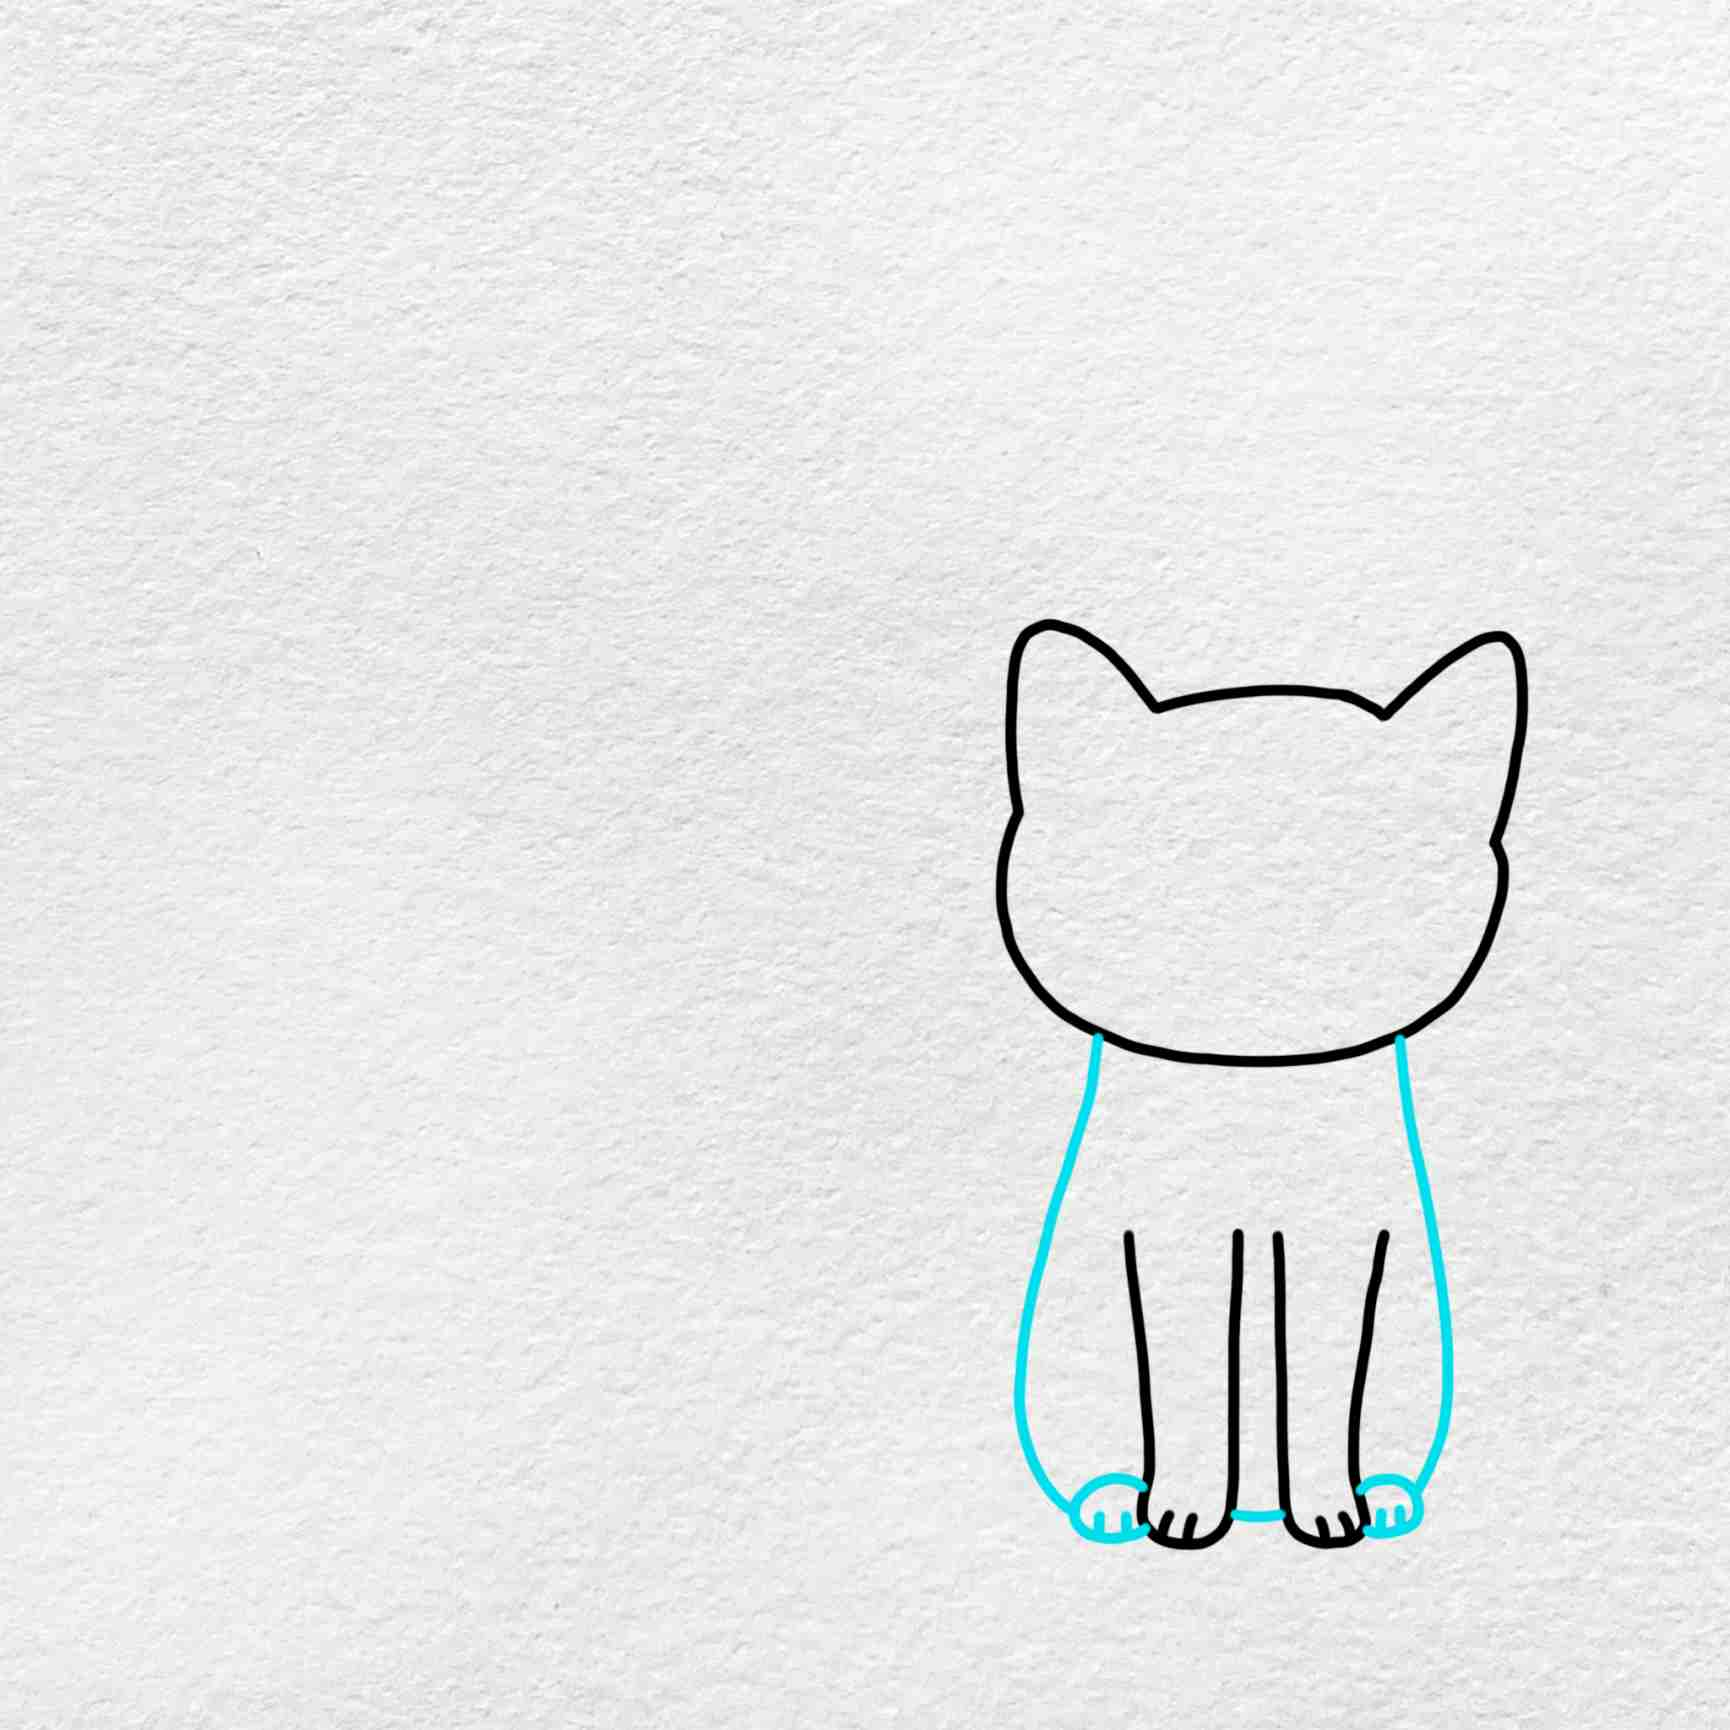 Cat And Dog Drawing: Step 3